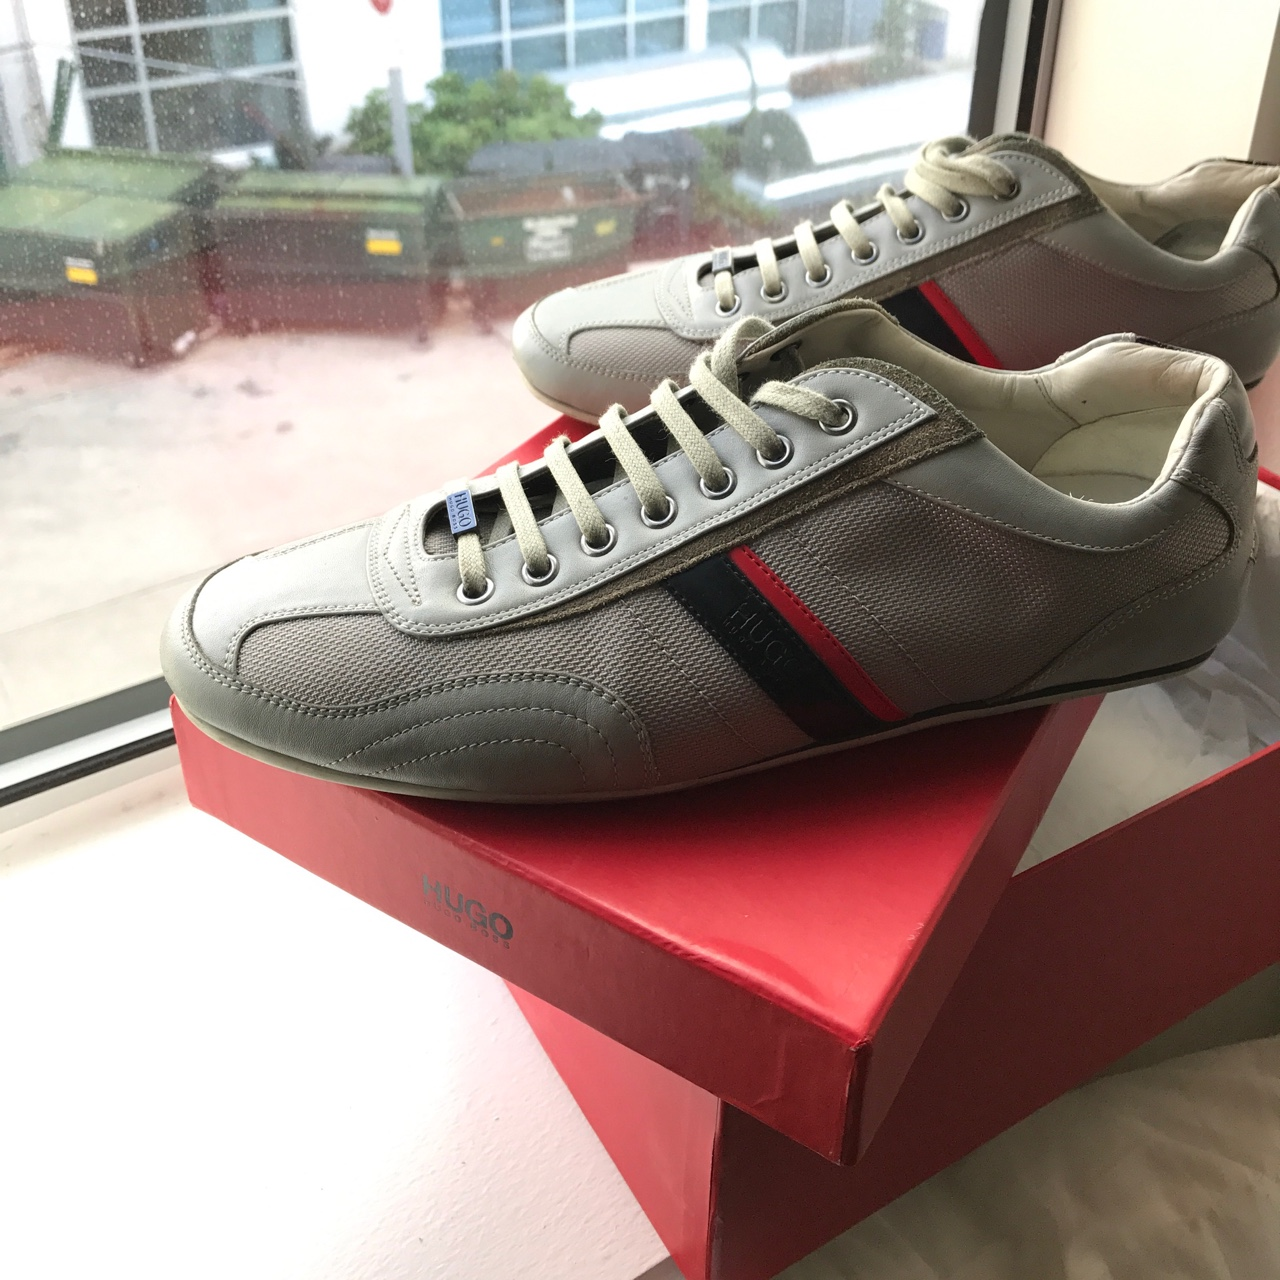 Hugo Boss Thatoz Sneakers comes in